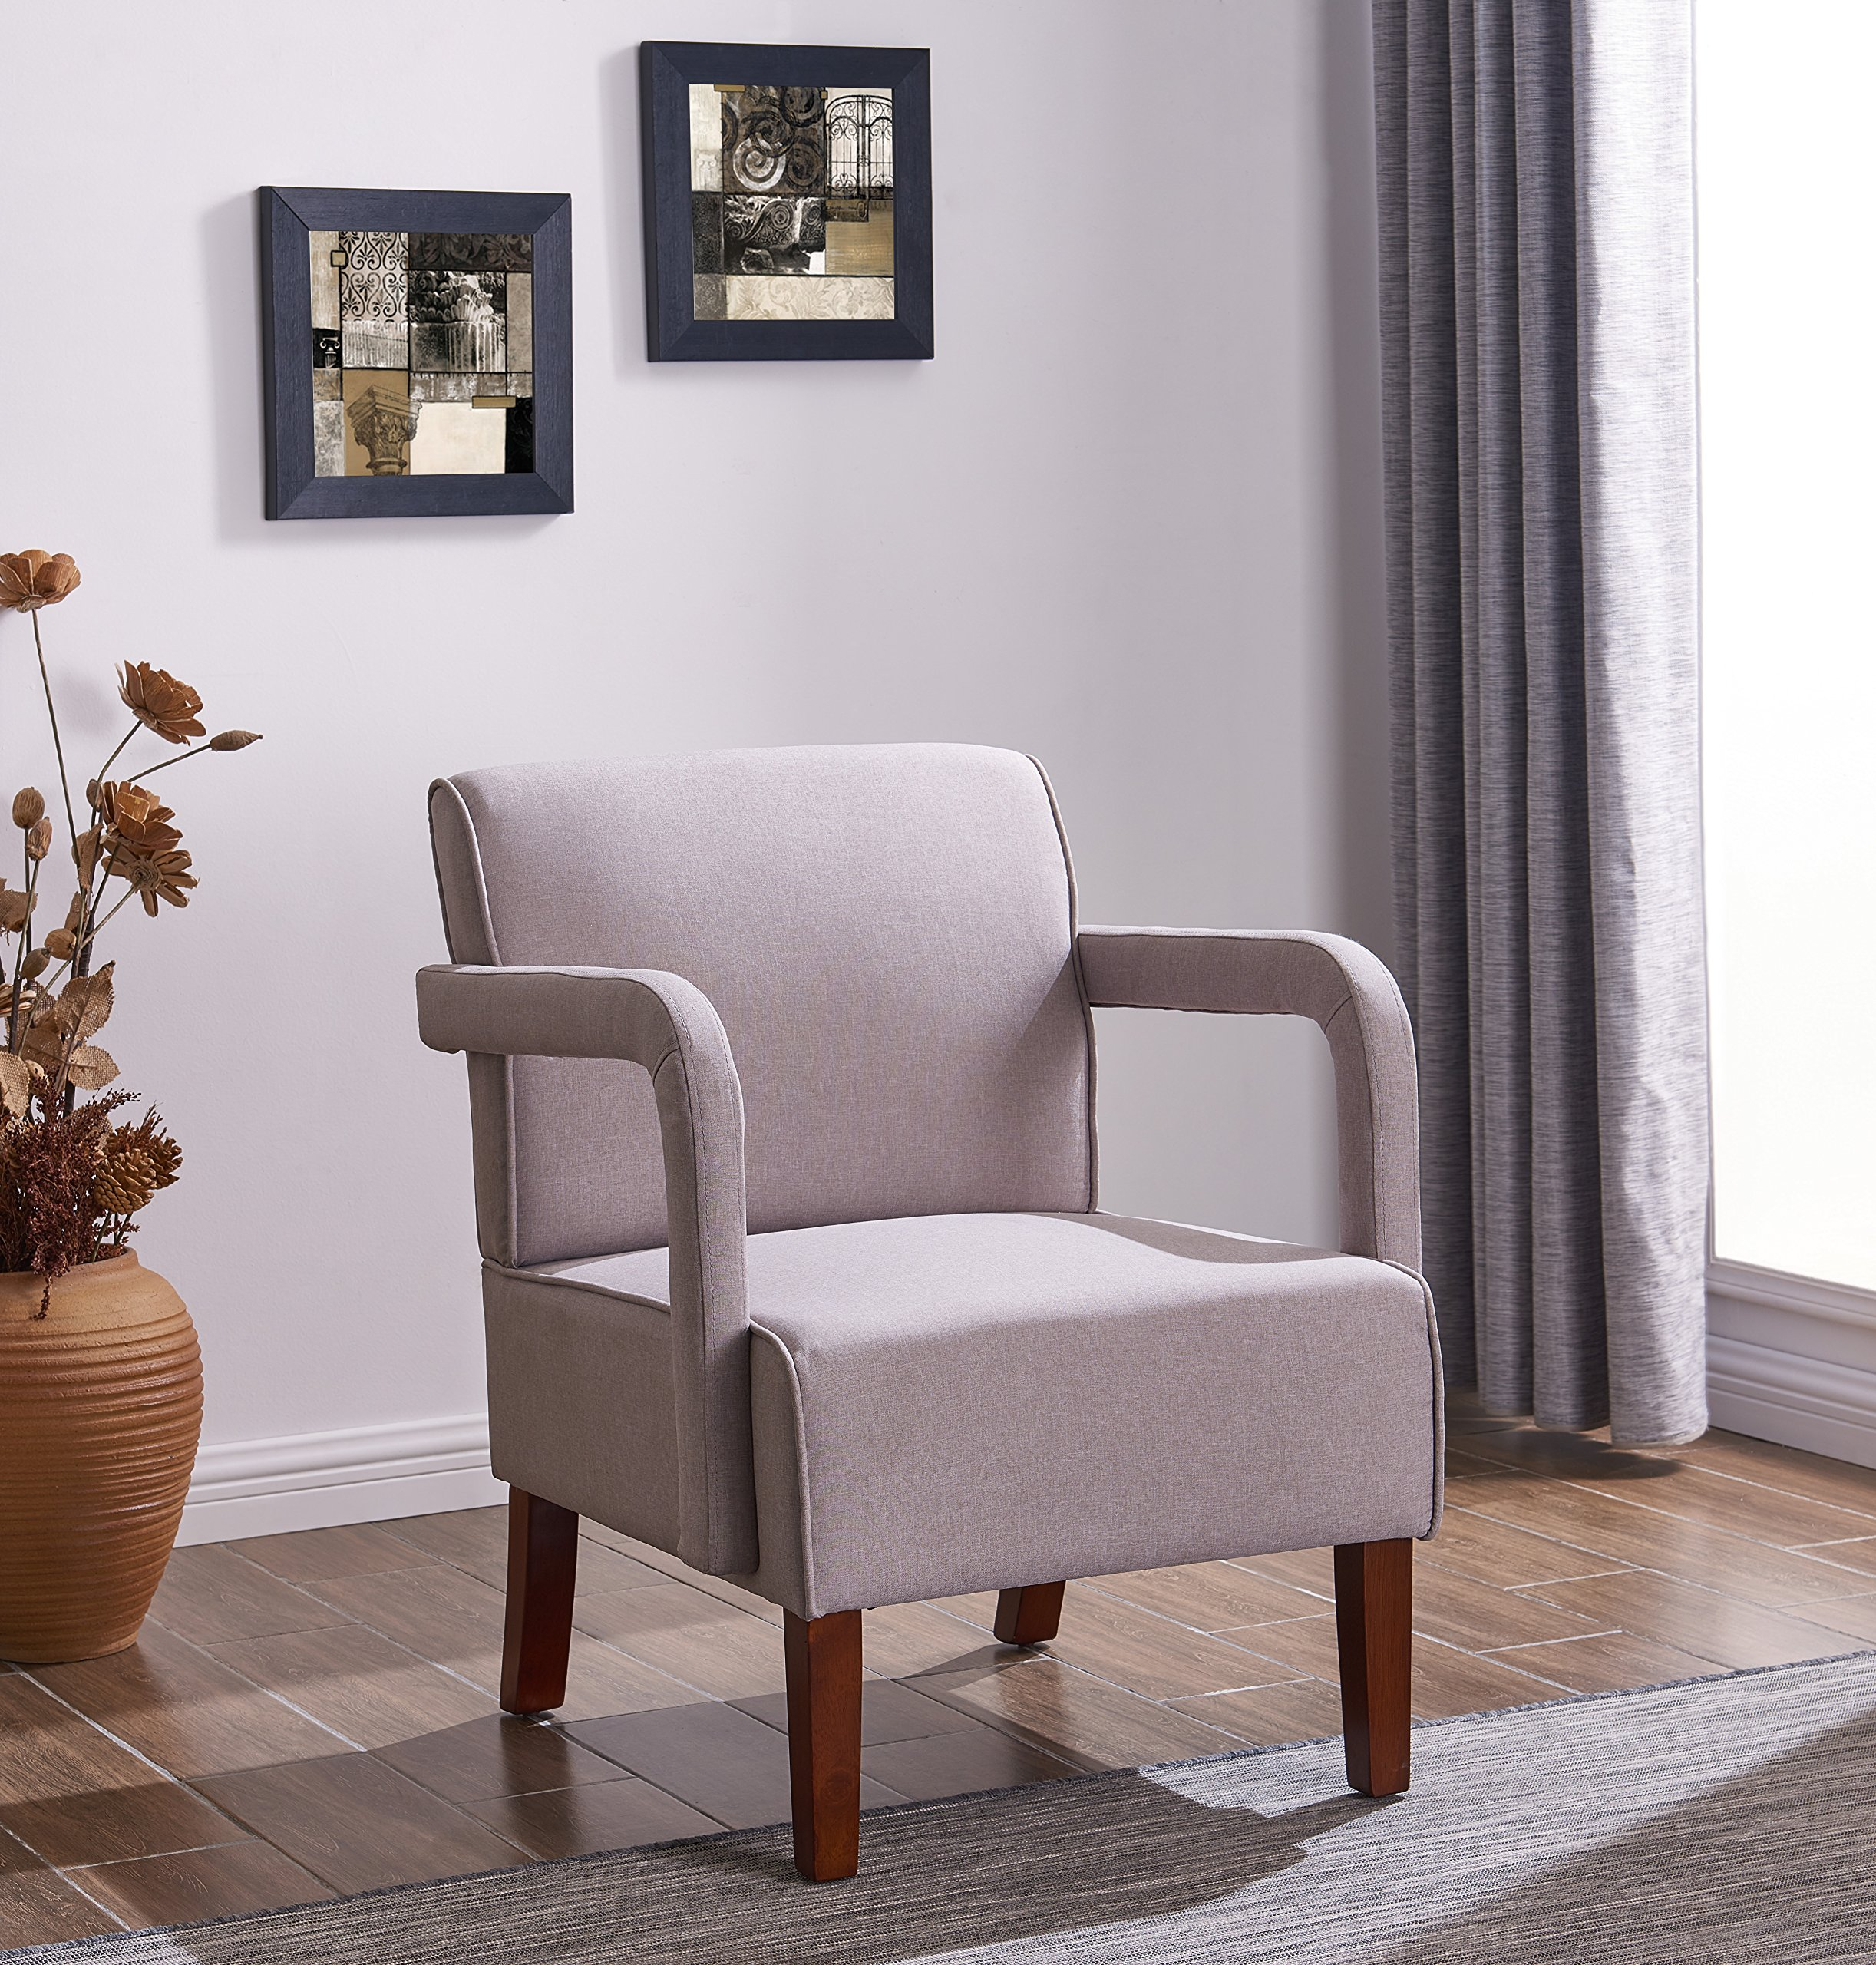 IDS Living Room Bedroom Contemporary Stylish Button-Tufted Upholstered Accent Arm Chair Wooden Leg -Light Grey Fabric by IDS Home (Image #1)